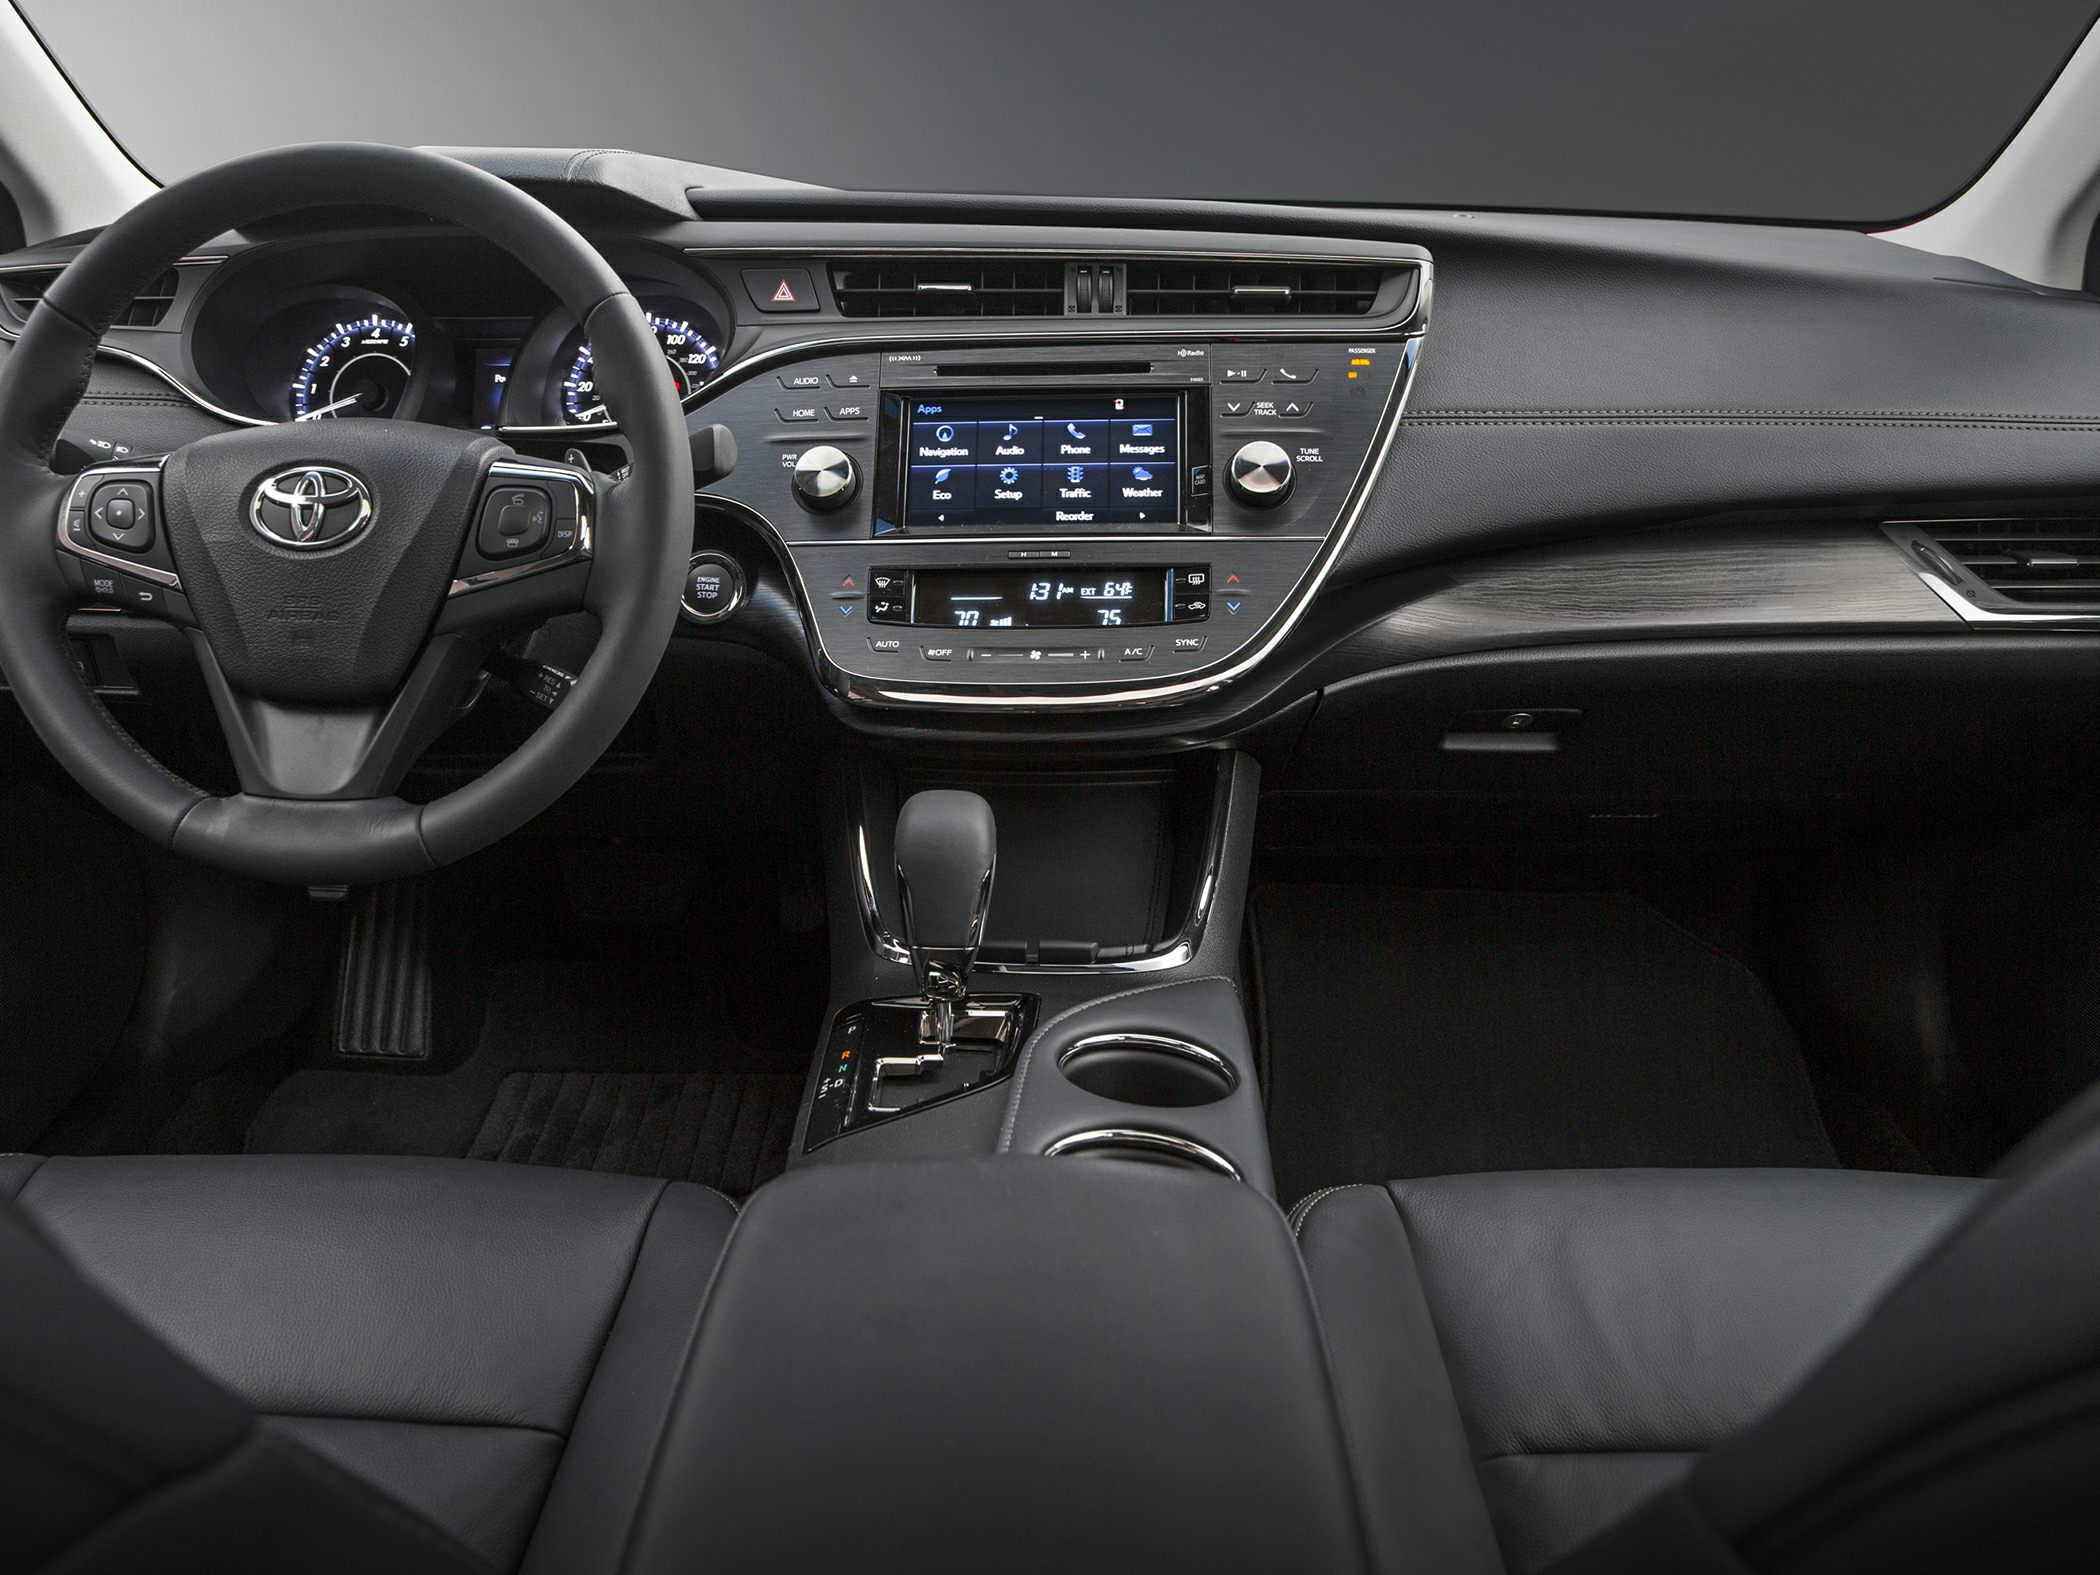 2018 Toyota Avalon Specs Safety Rating & MPG CarsDirect